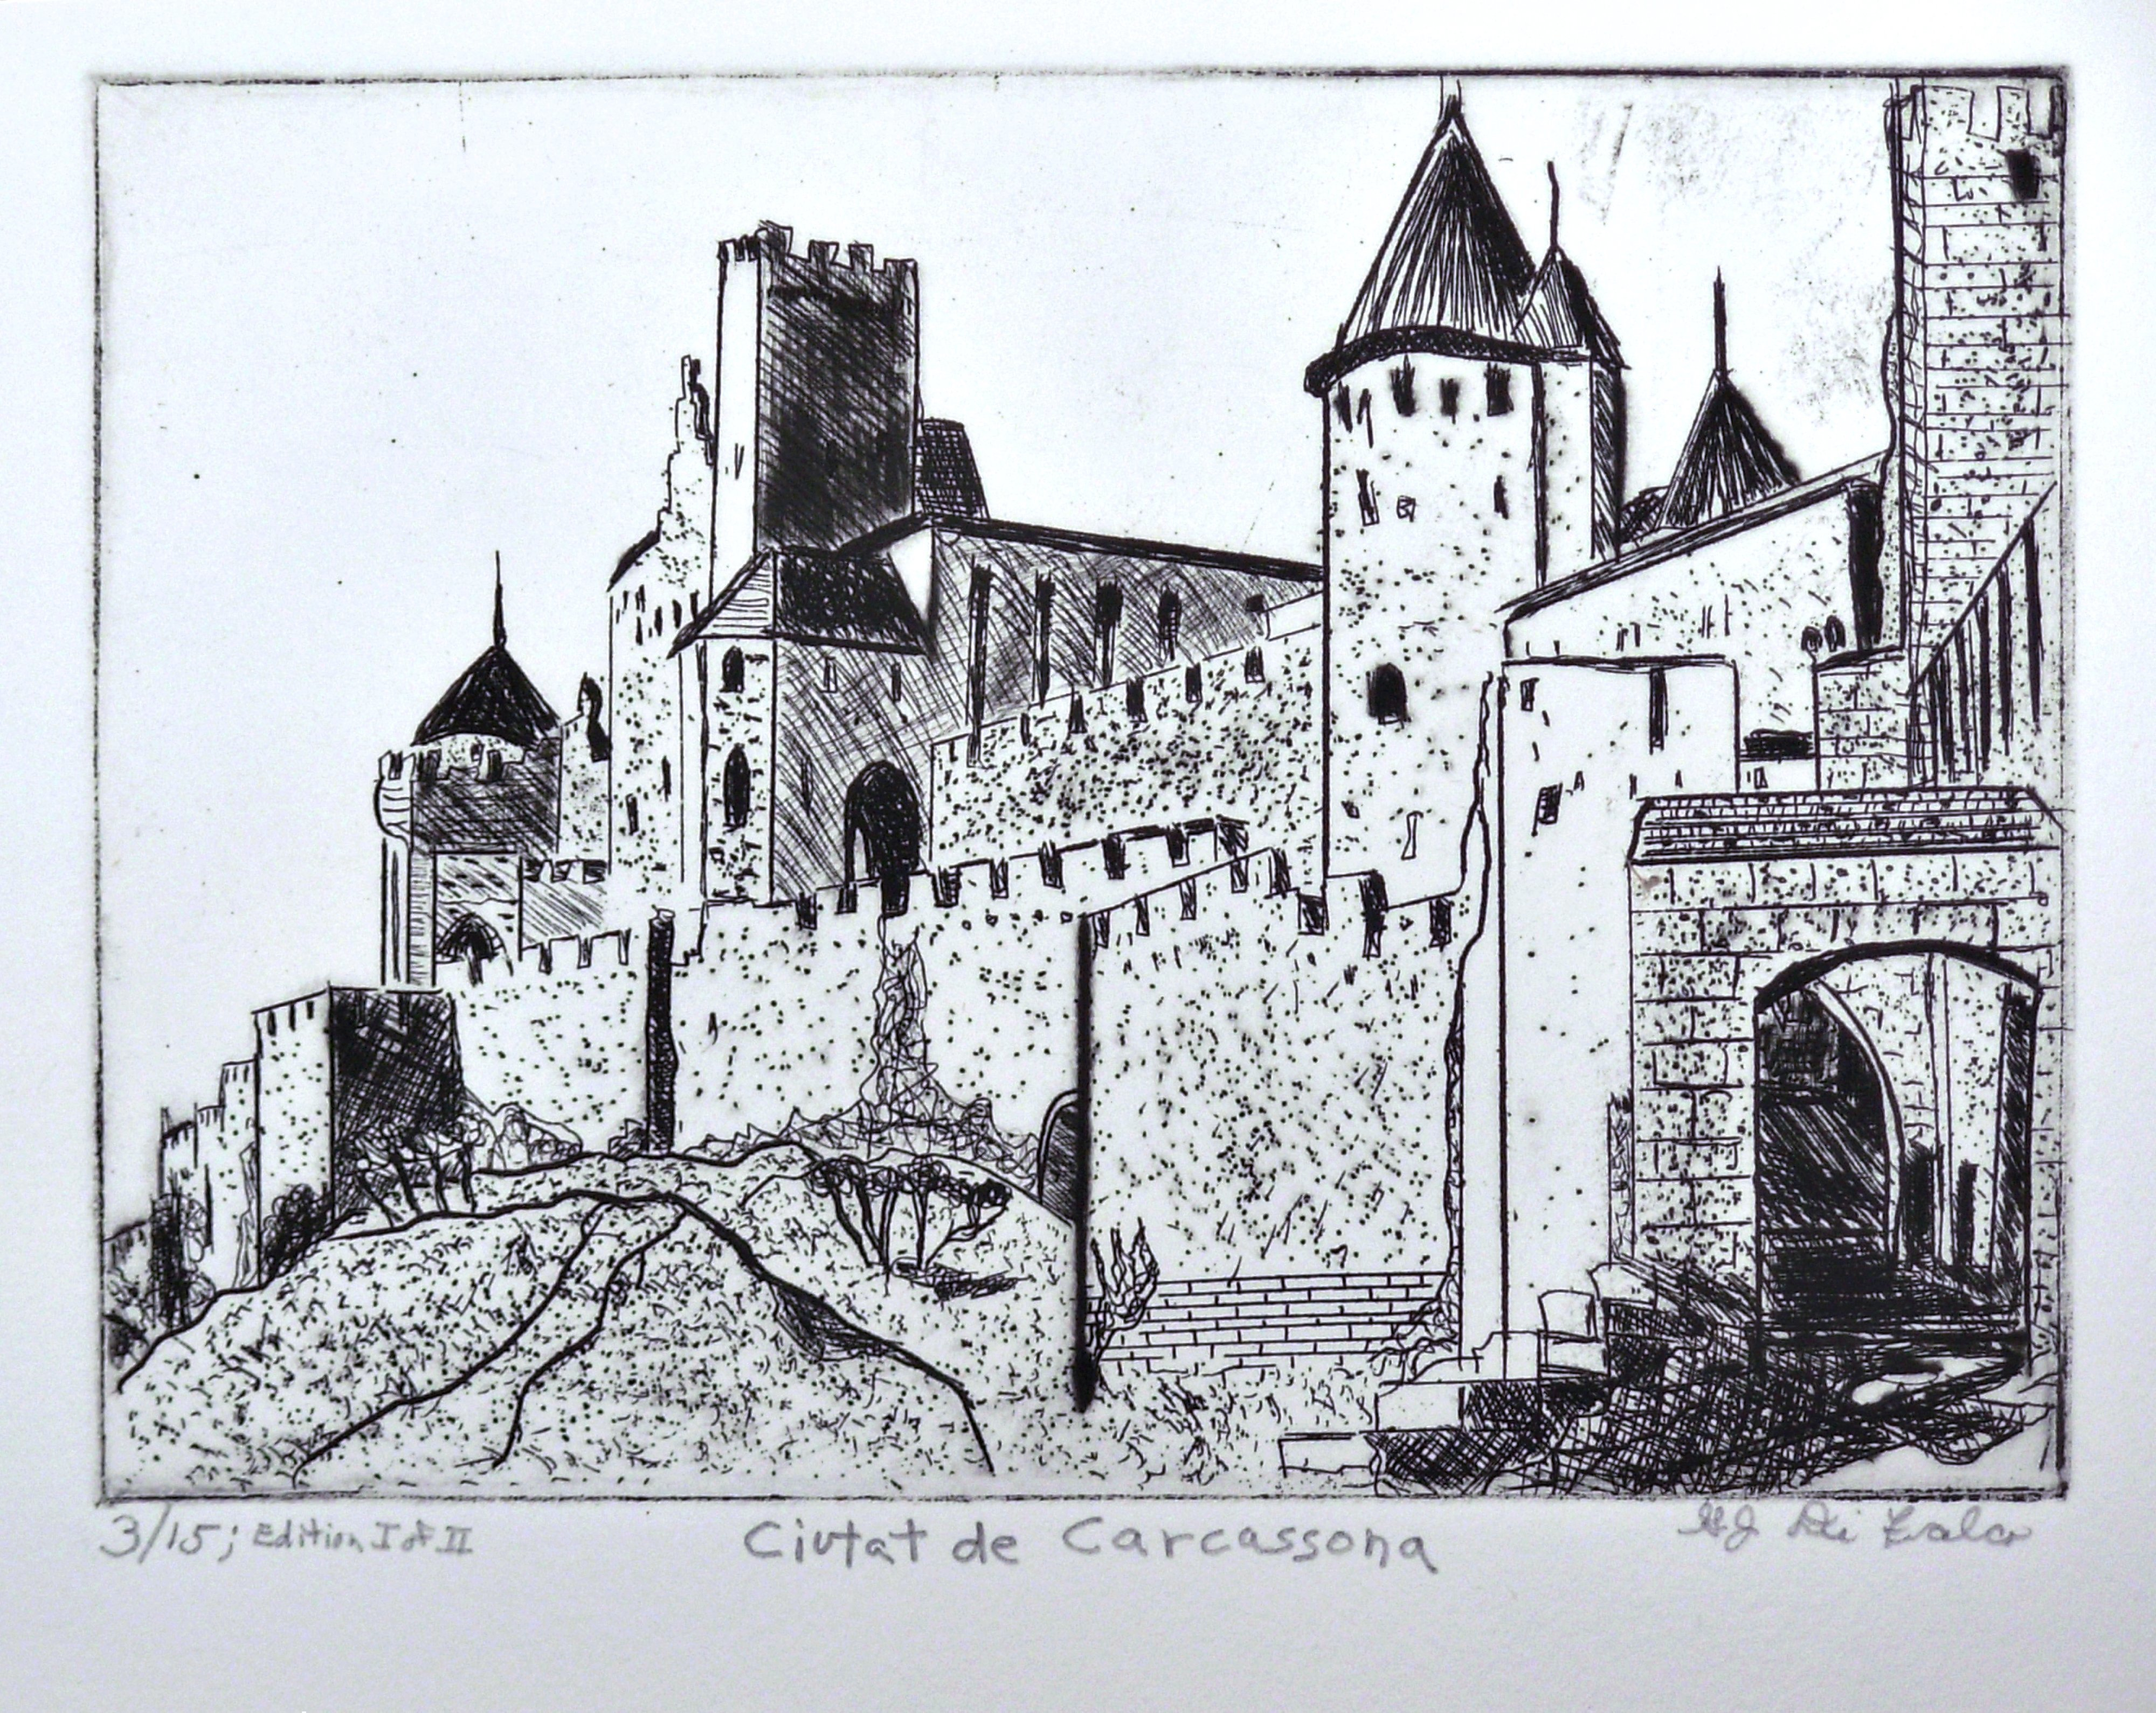 Jerry  Di Falco: 'CUITAT DE CARCASSONNE', 2012 Etching, Landmarks. The title translates as, City of Carcassonne. The work was hand printed and published by the artist at The Center for Works on Paper in Philadelphia, Pennsylvania. Please note that this etching is shipped to the collector without a frame or mat. This keeps the price low and allows the ...